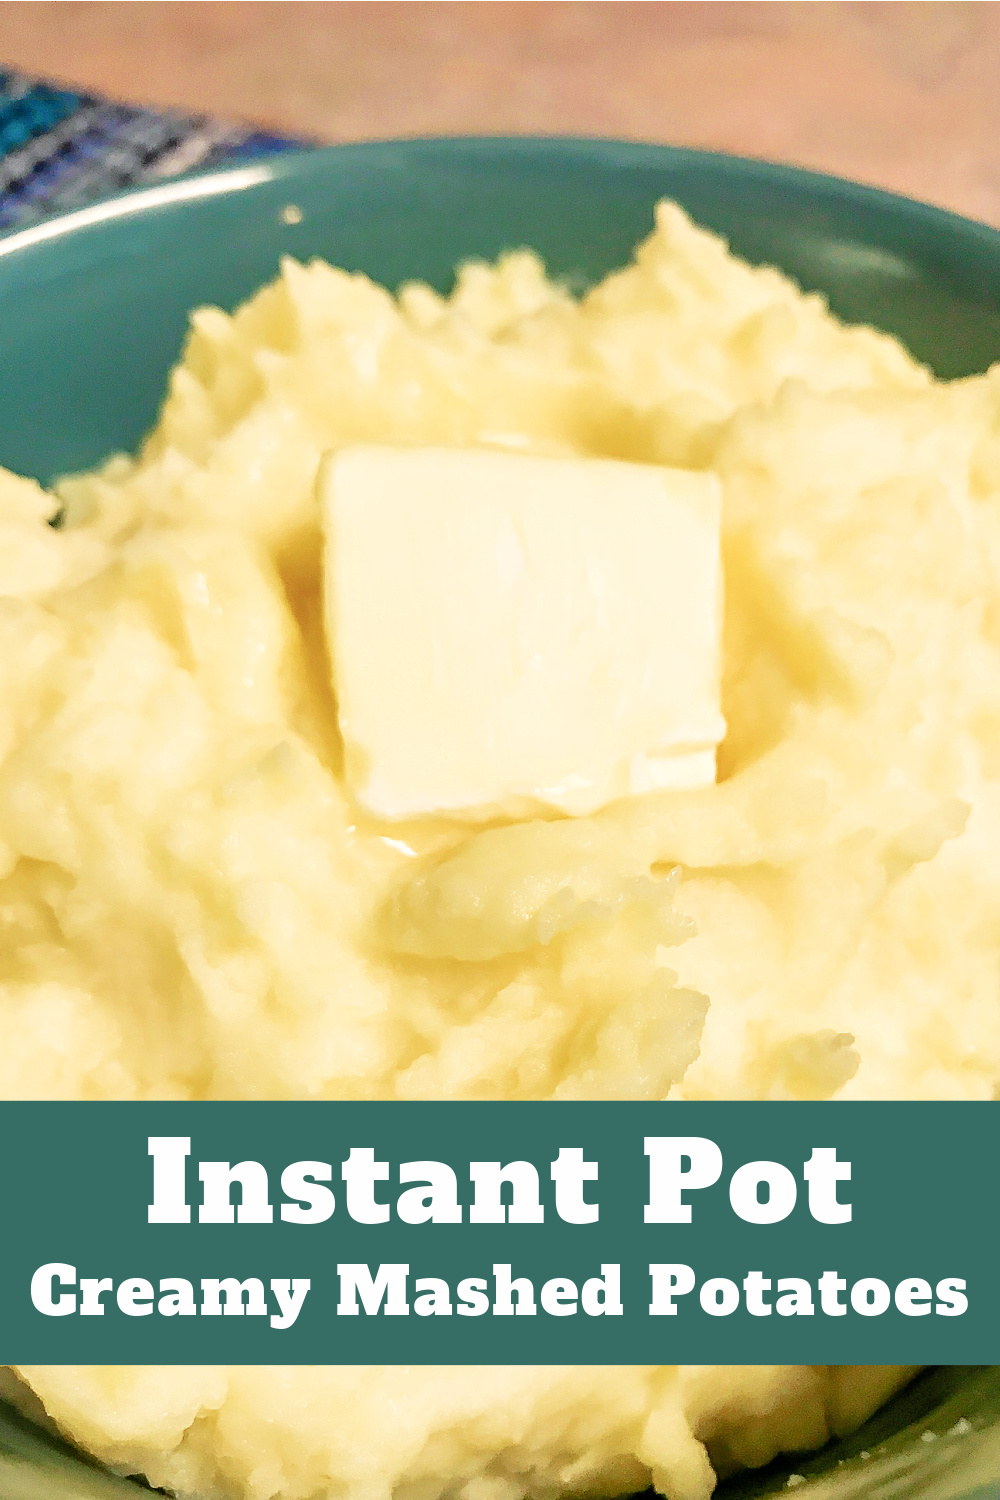 A bowl loaded with creamy mashed potatoes with a melting pat of butter on top.